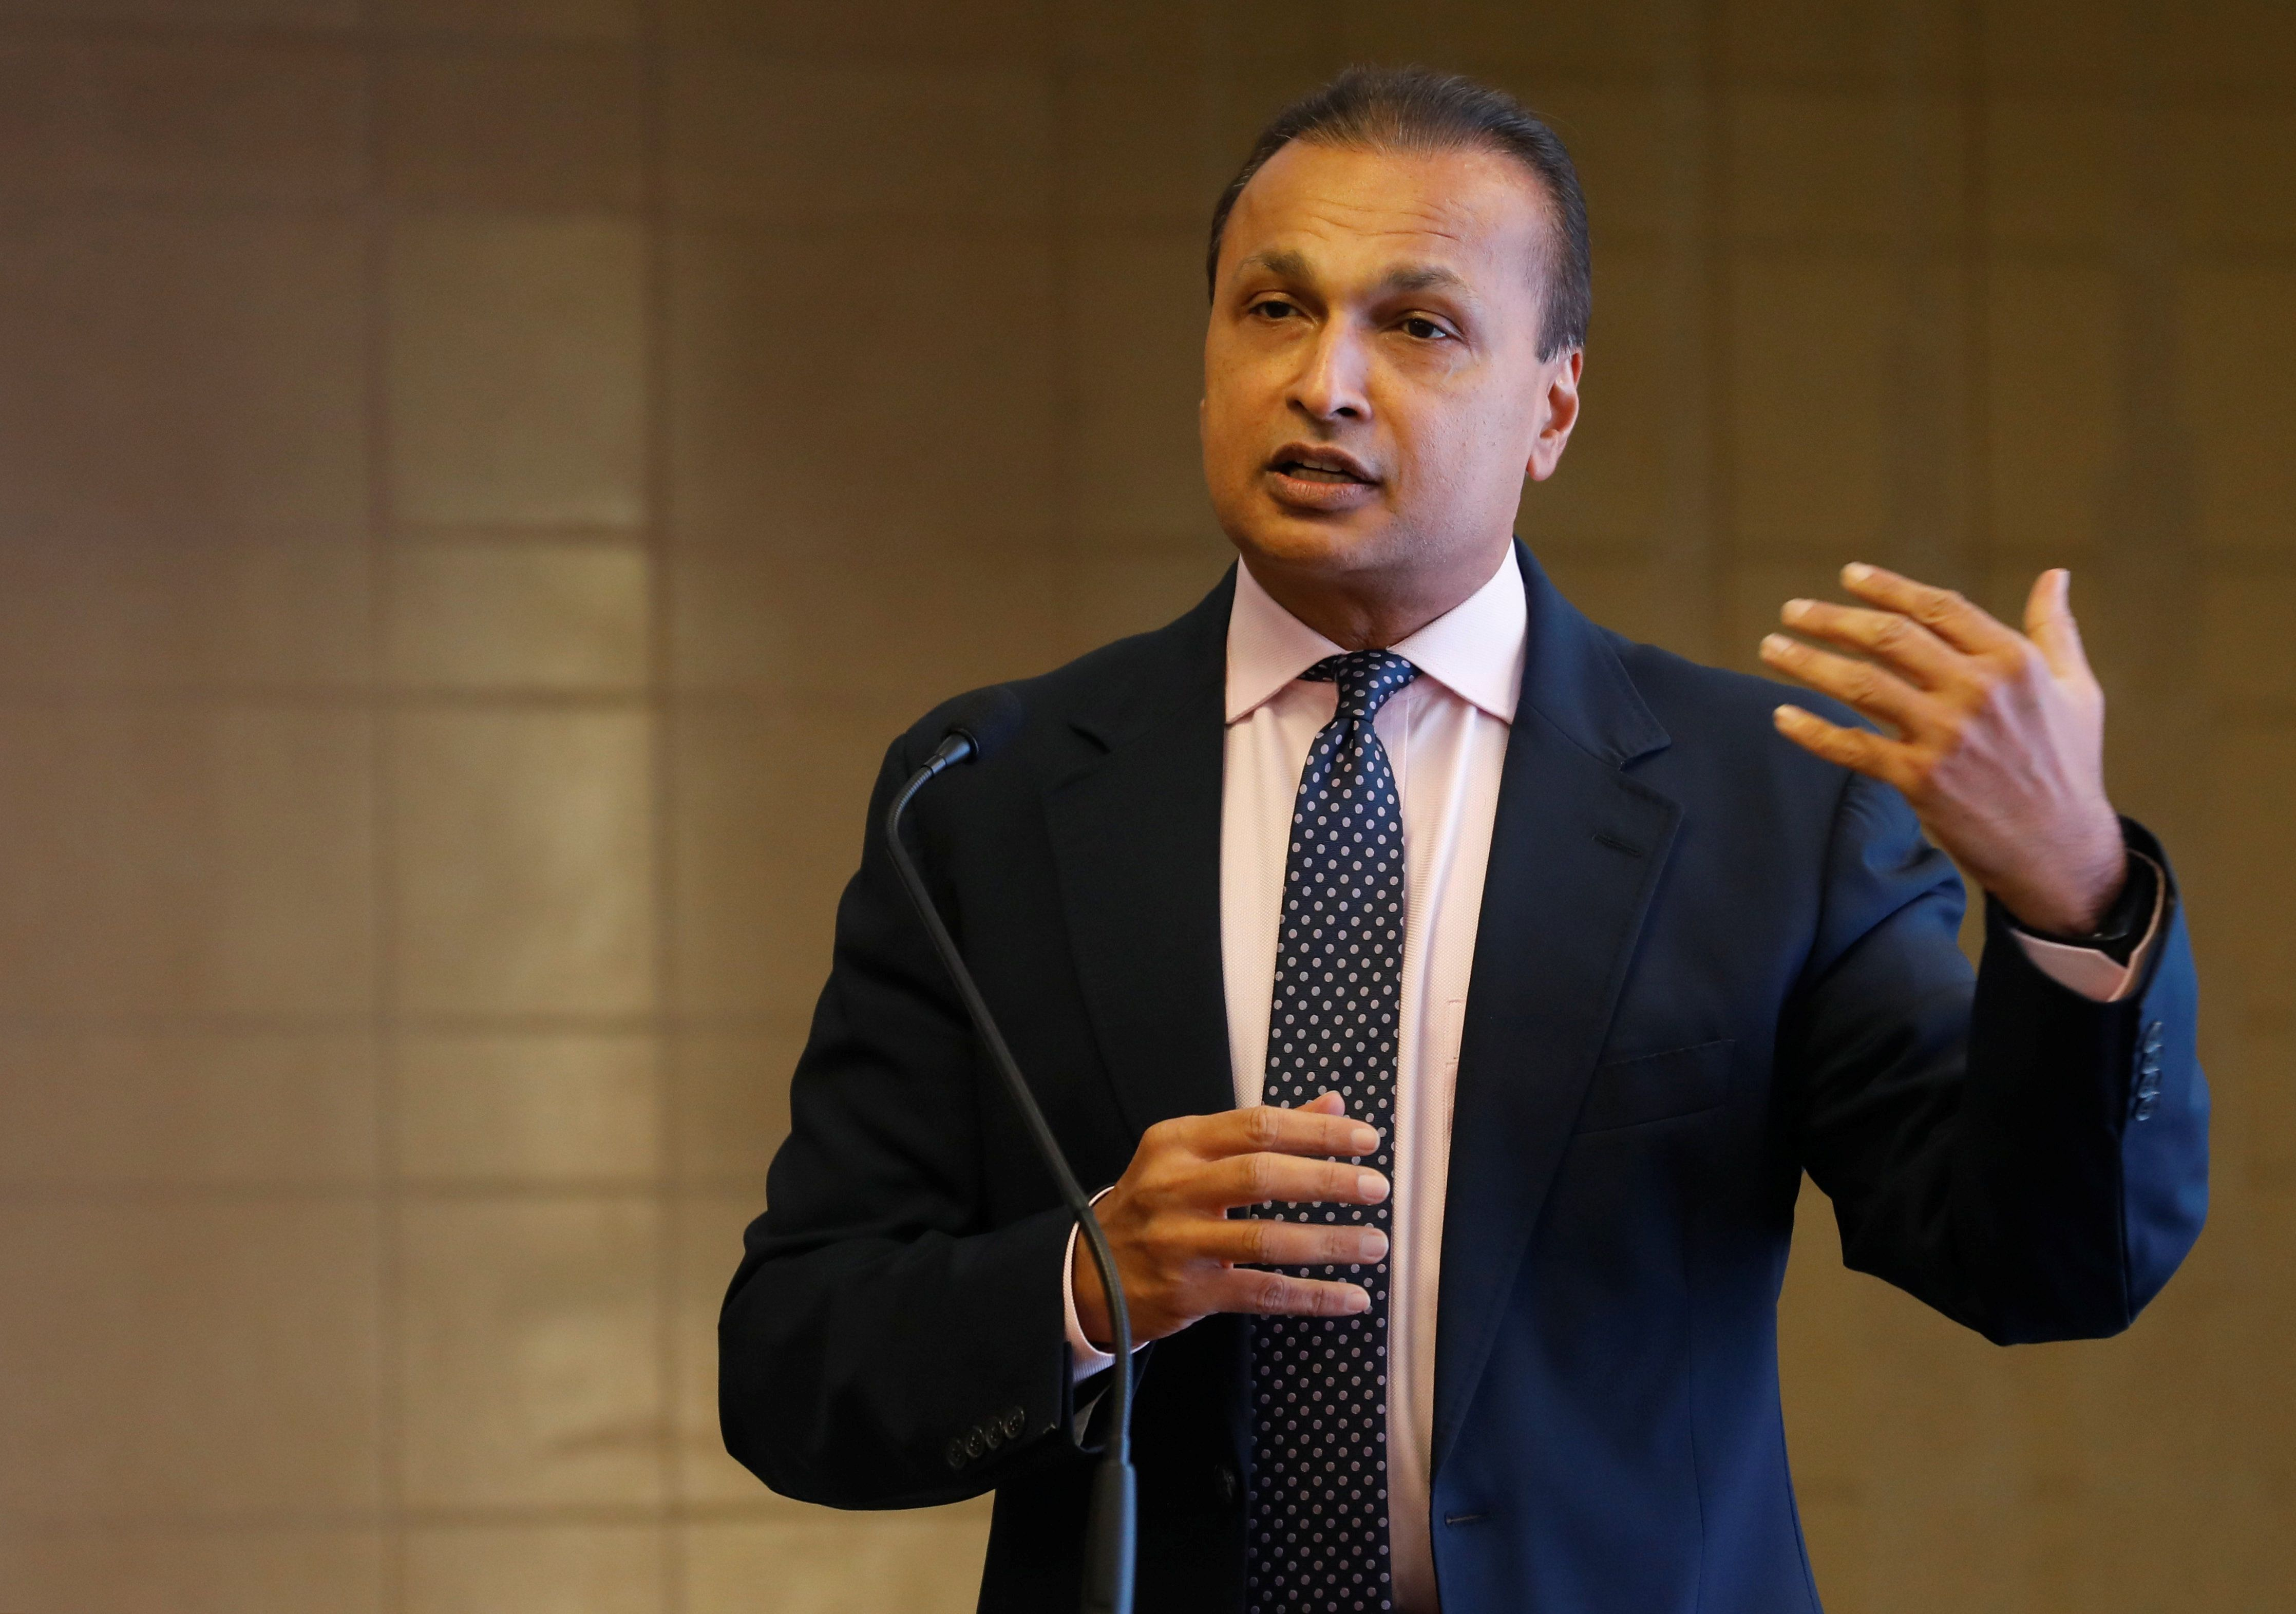 Anil Ambani Held Guilty Of Contempt In Ericsson Case, Must Pay Dues In 4 Weeks Or Face